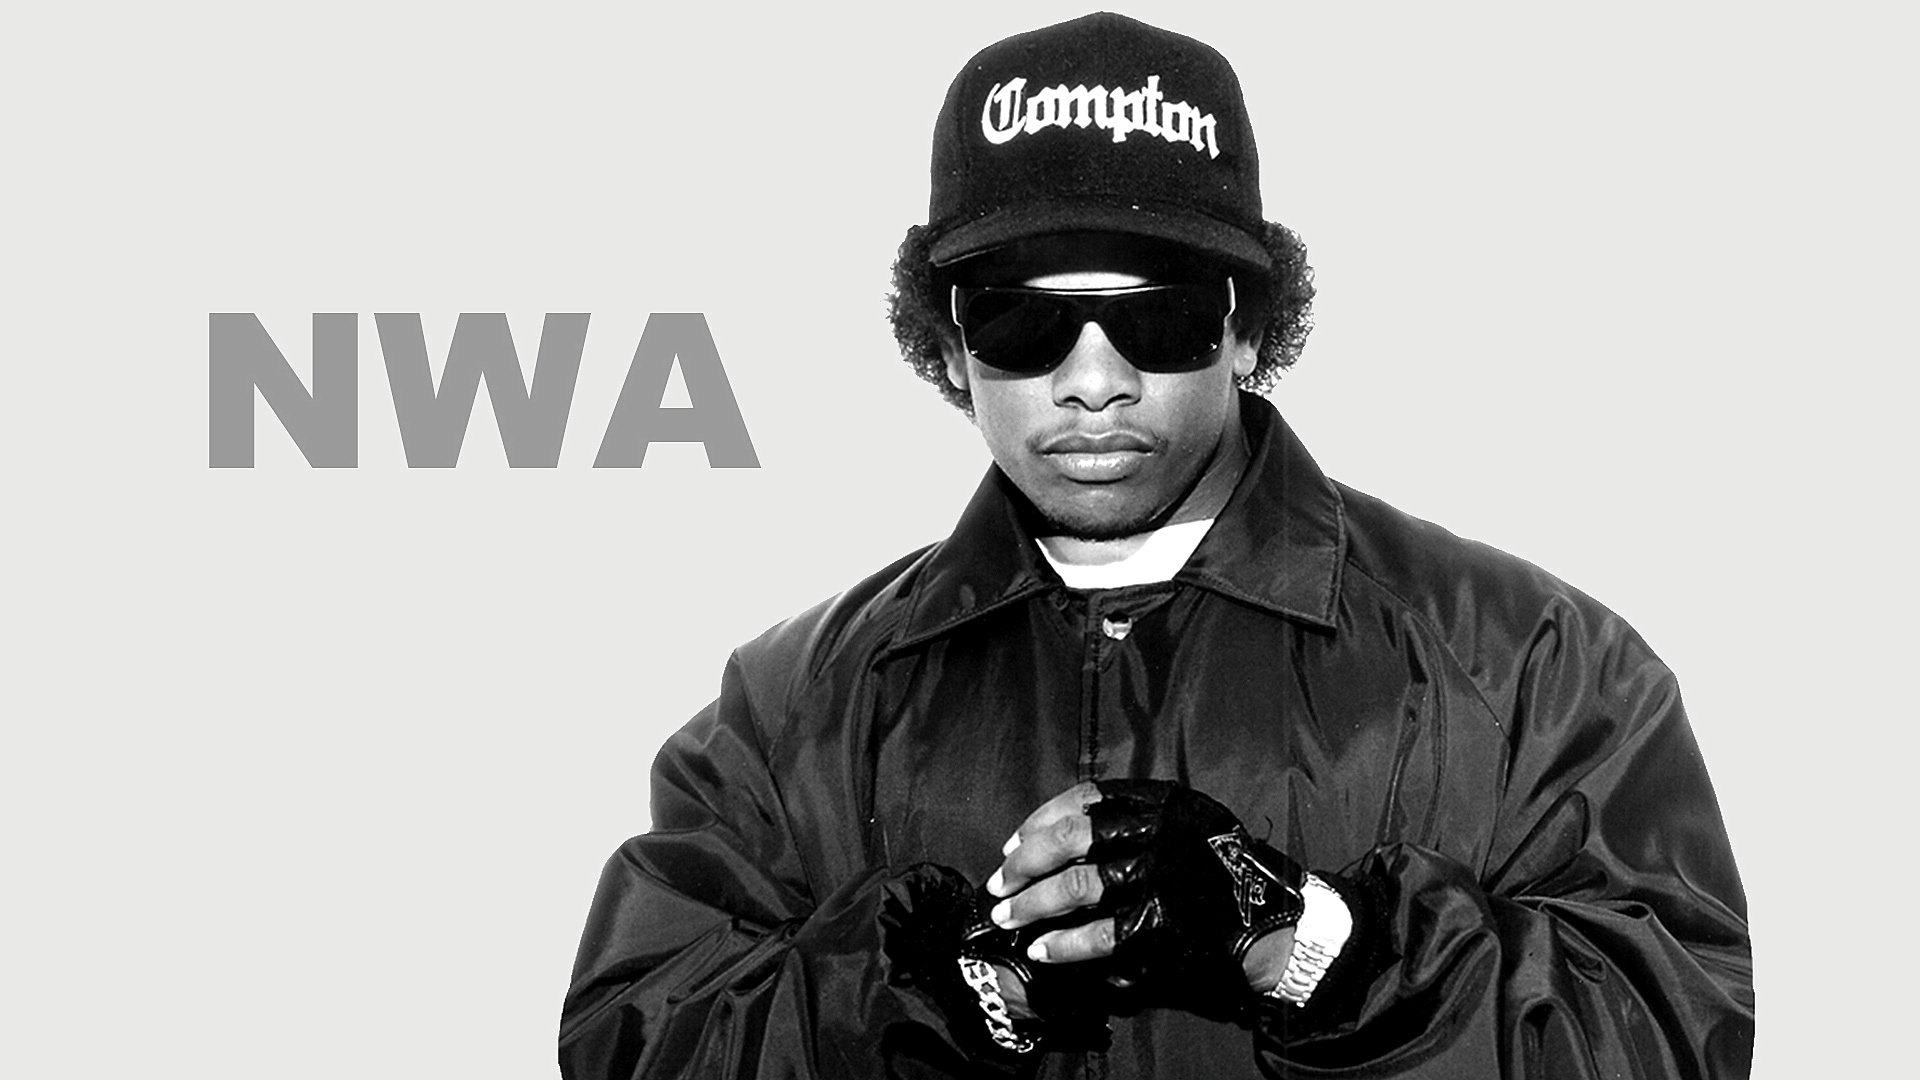 2 Eazy E HD Wallpapers Background Images 1920x1080